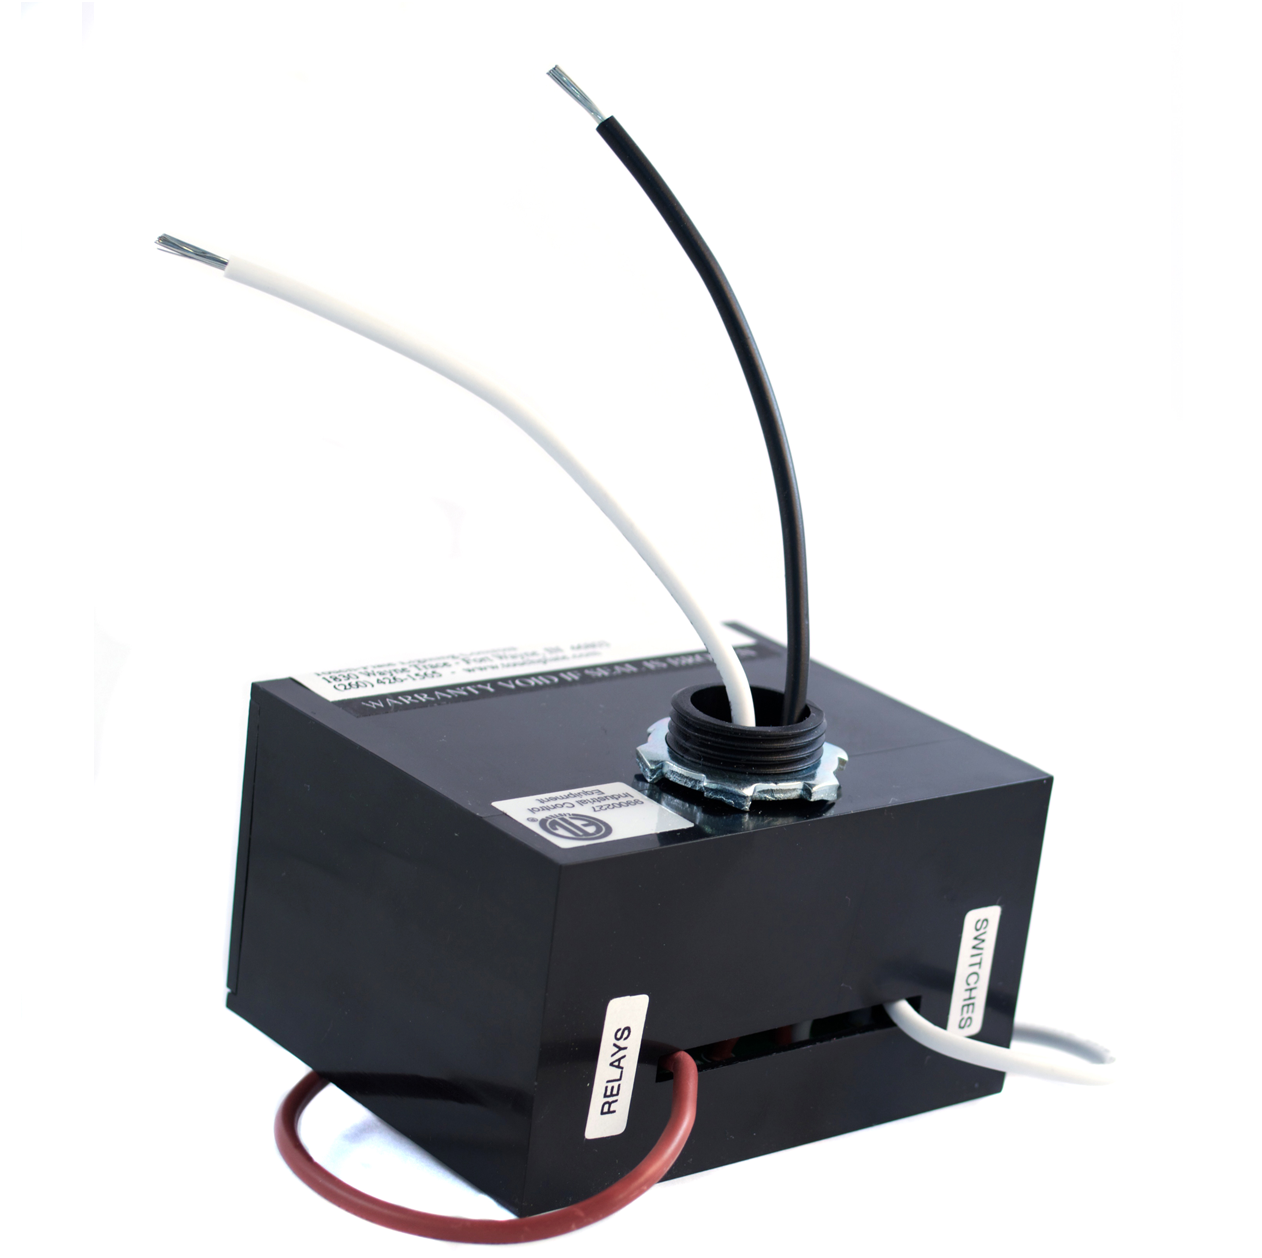 120v Transverter Replacement Parts Touch Plate Lighting Controls Touch Plate Lighting Controls